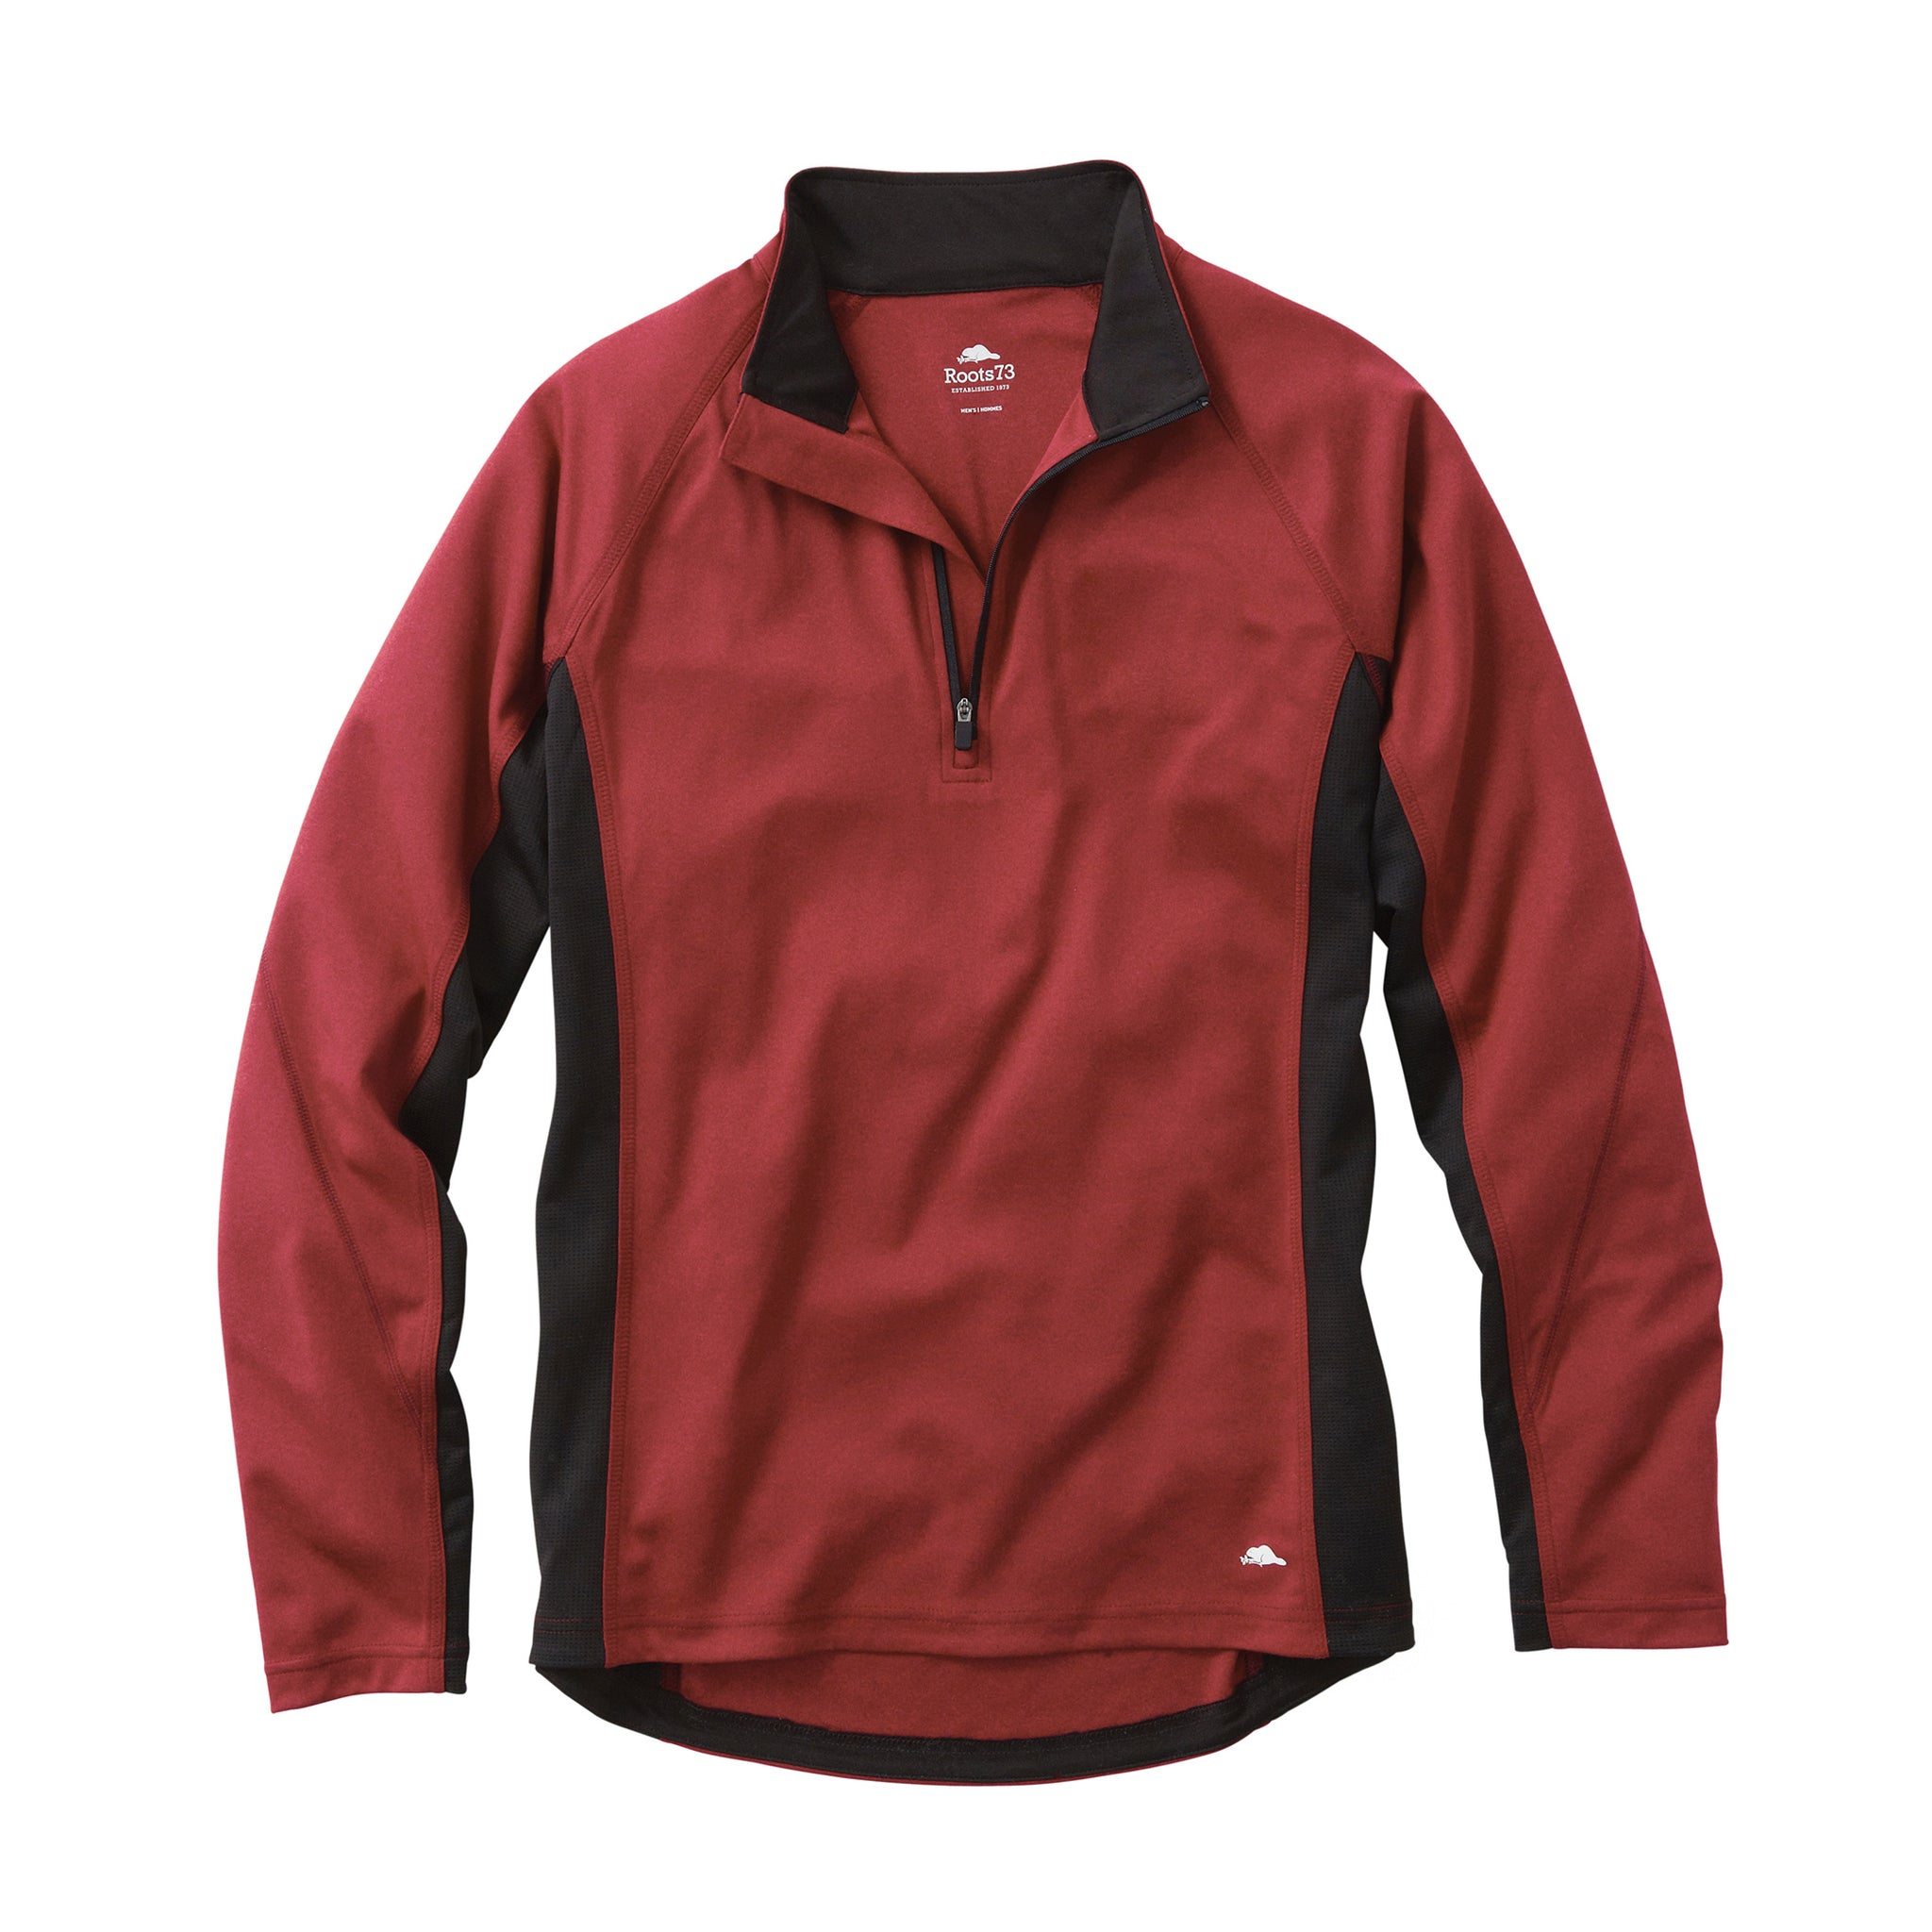 ROOTS73 MEN'S BIRCHLAKE QUARTER ZIP